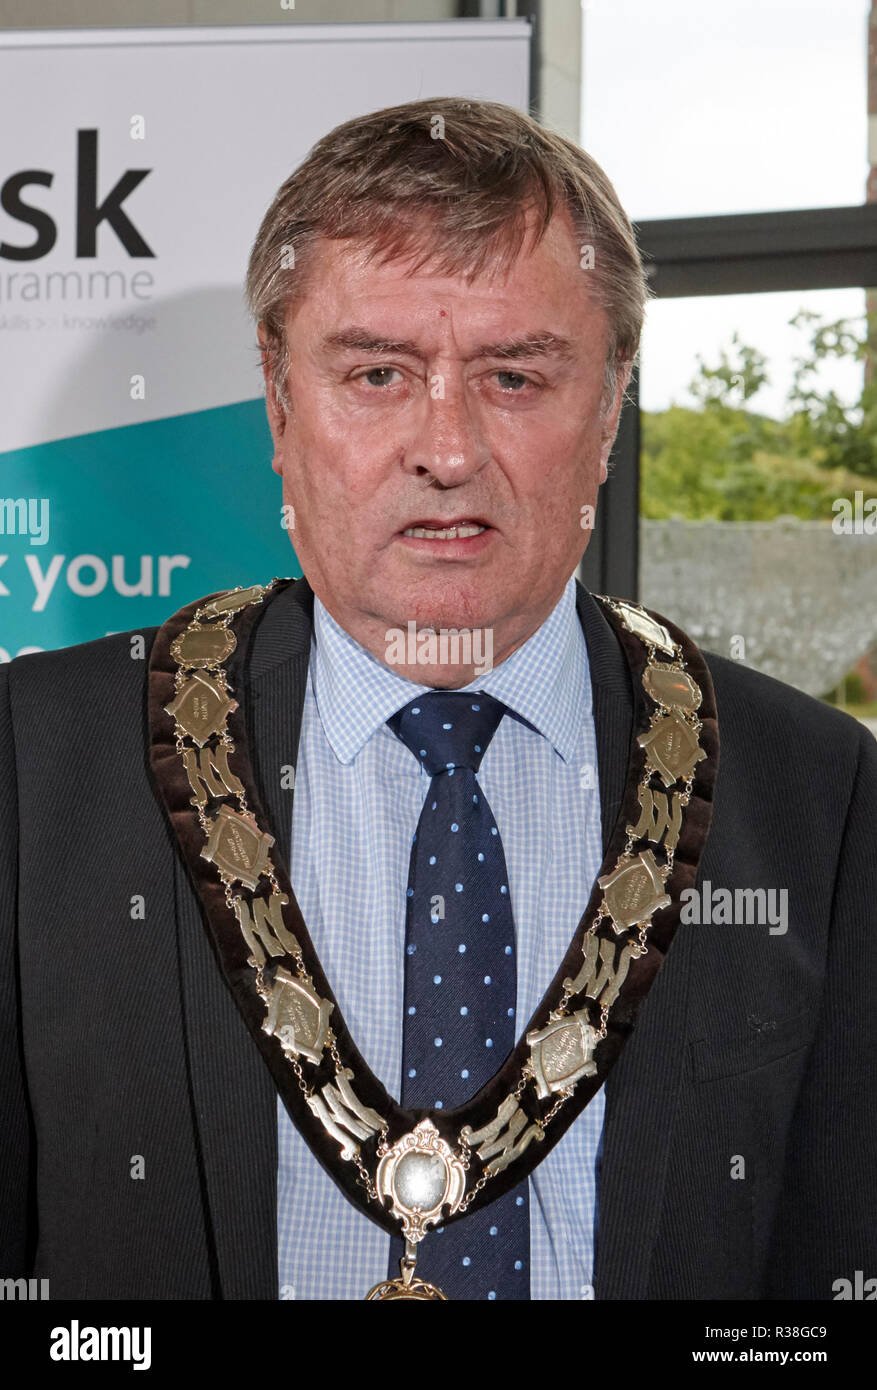 Former Newtownabbey Borough Council Mayor Fraser Agnew Northern Ireland Ulster Unionist politician - Stock Image